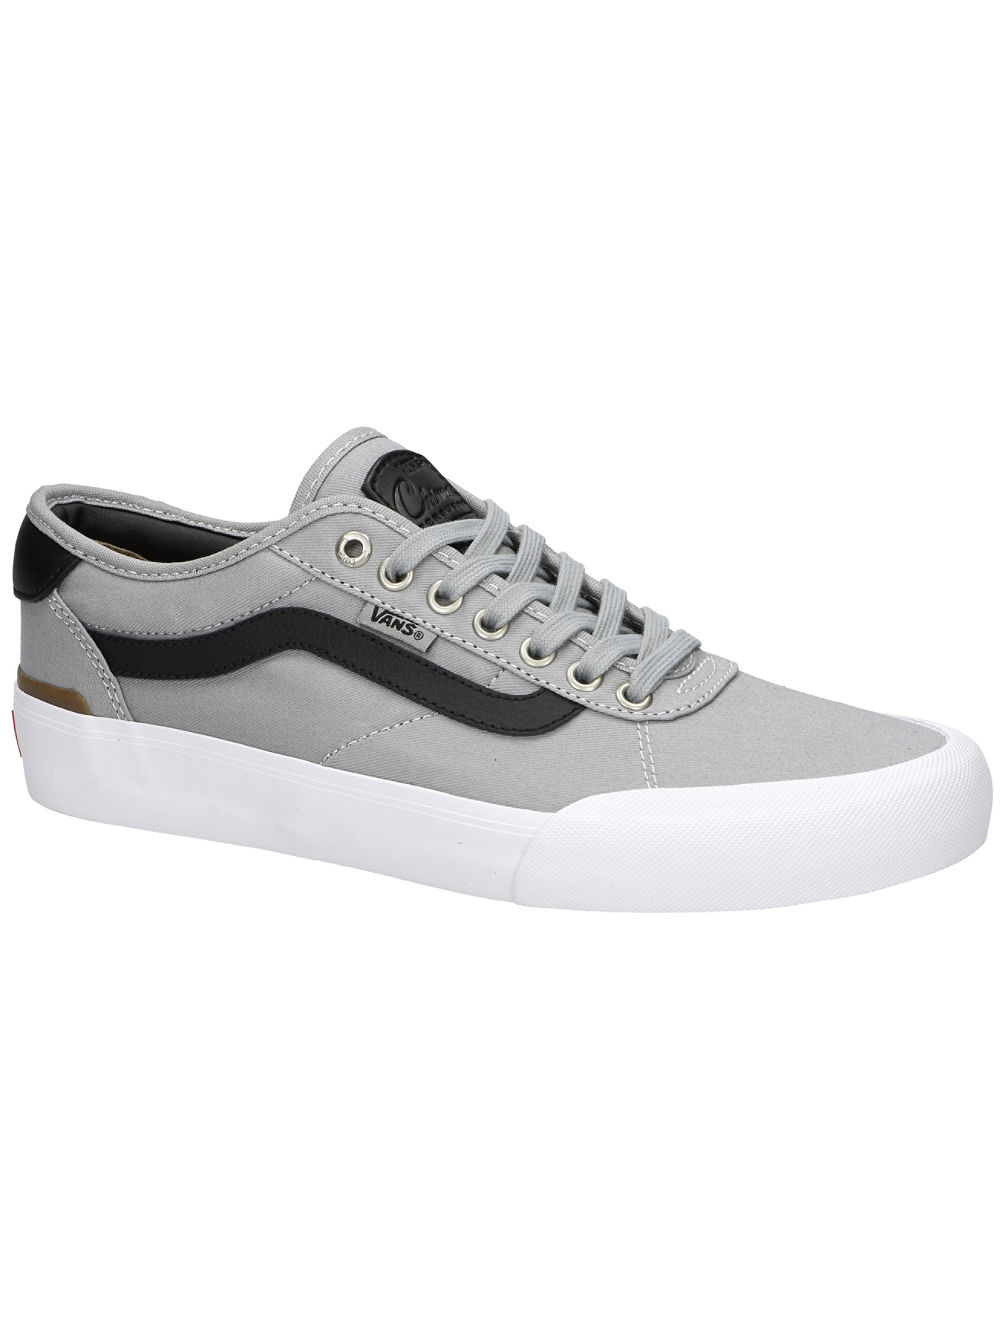 Buy Vans Chima Pro 2 Skate Shoes online at blue-tomato.com 005eb0437